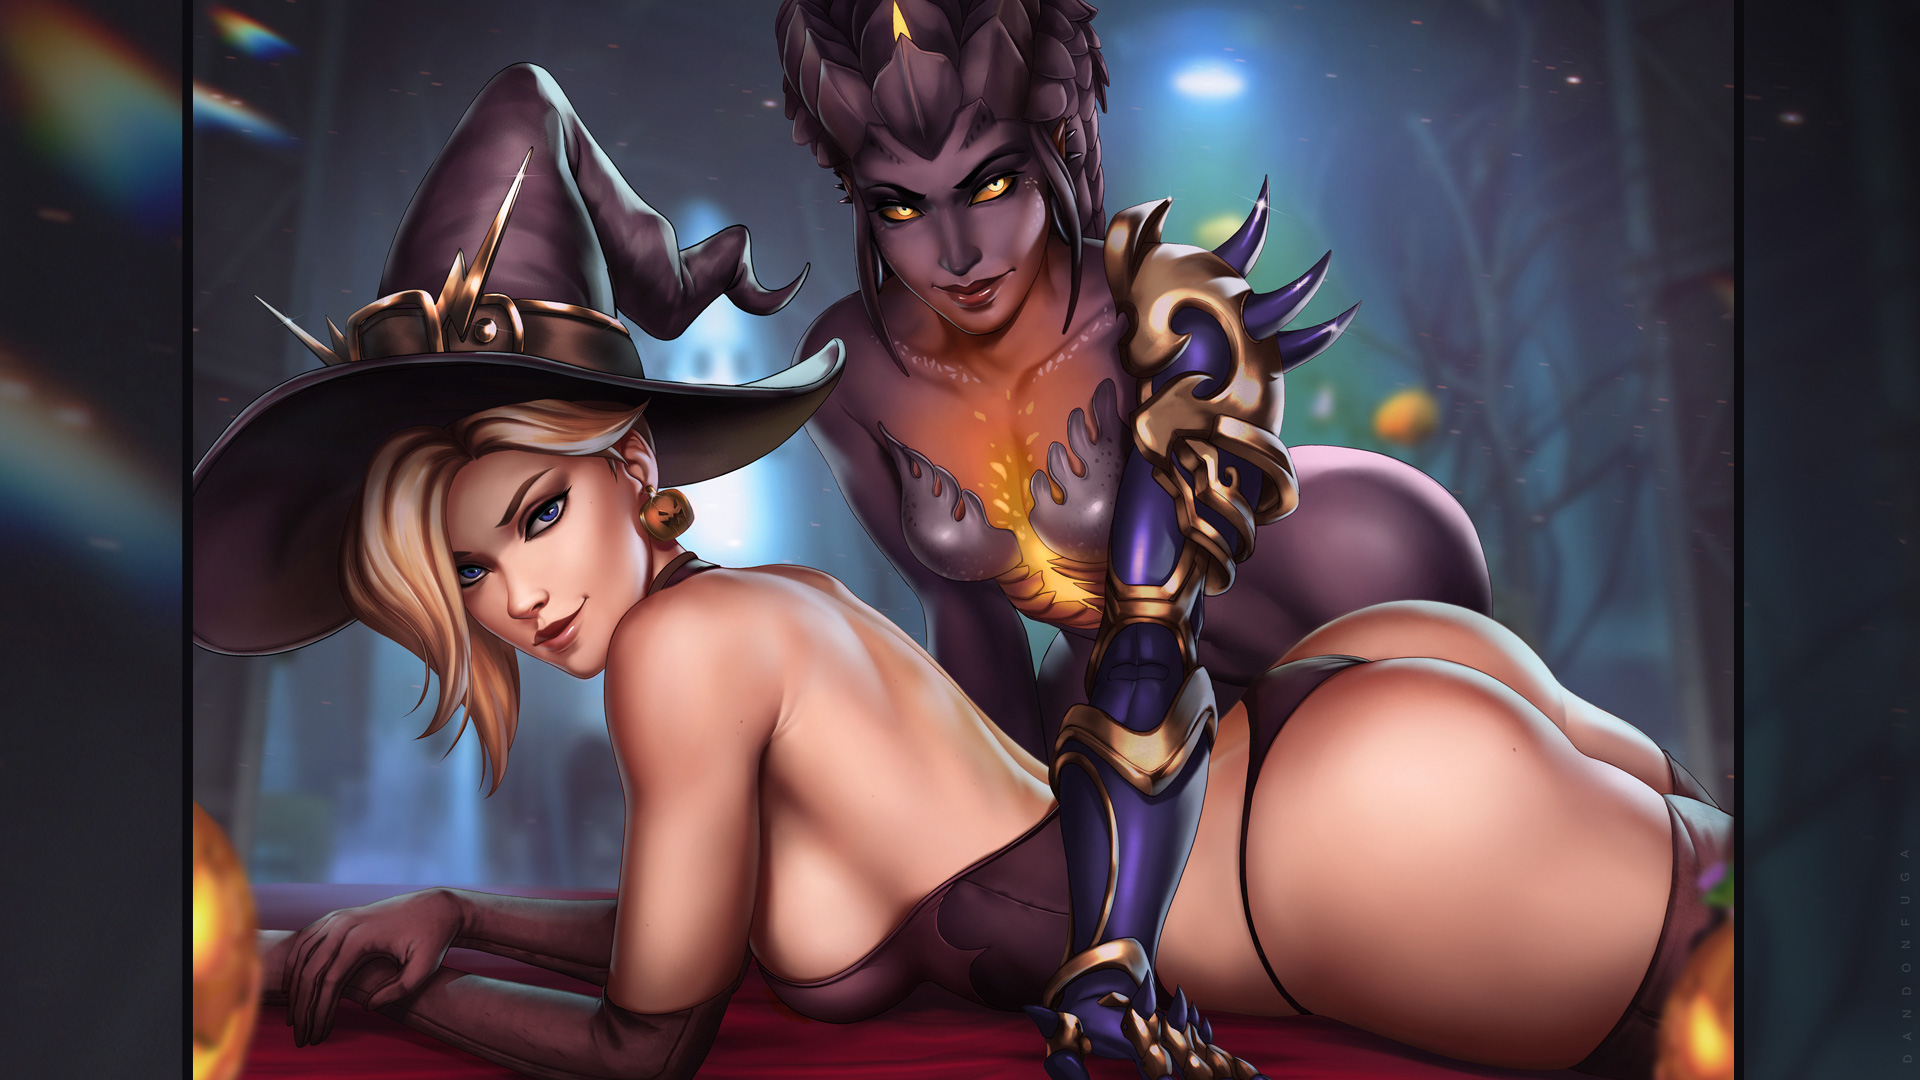 General 1920x1080 dandon fuga Overwatch Mercy (Overwatch) Symmetra (Overwatch) Witch Mercy looking at viewer ass